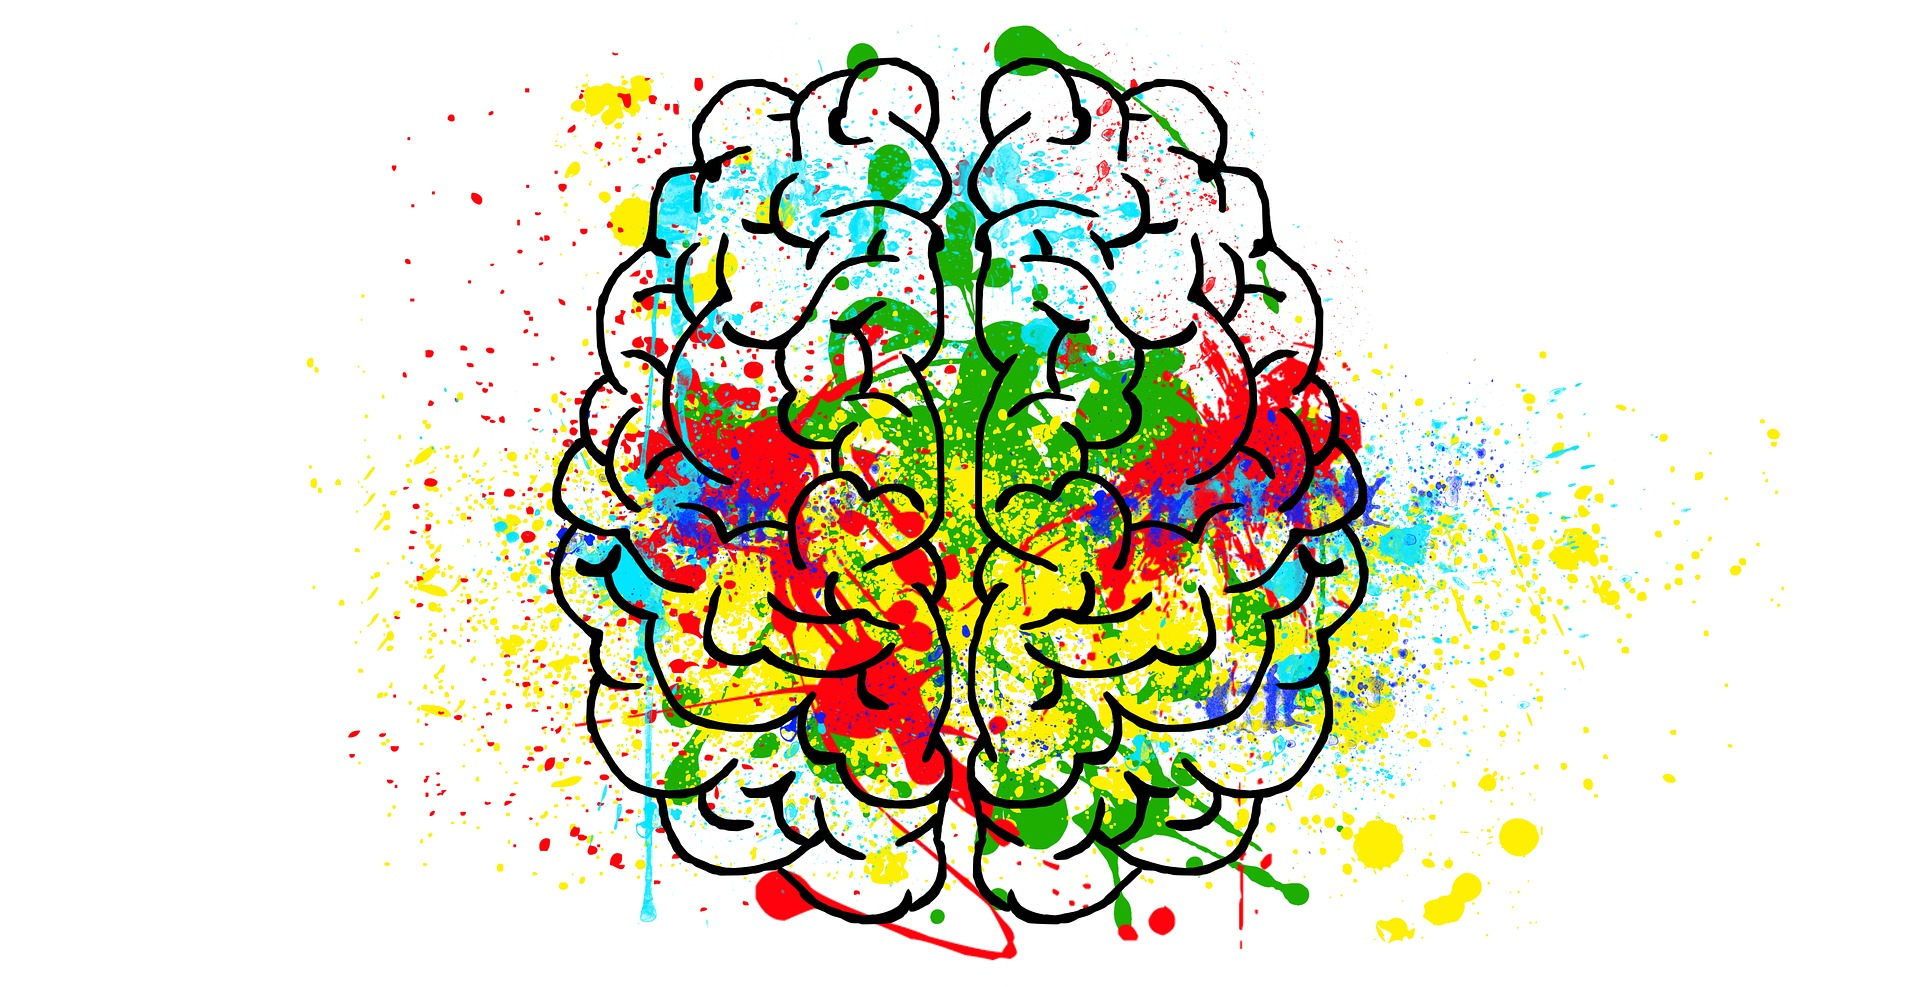 drawing of brain with colorful splotches